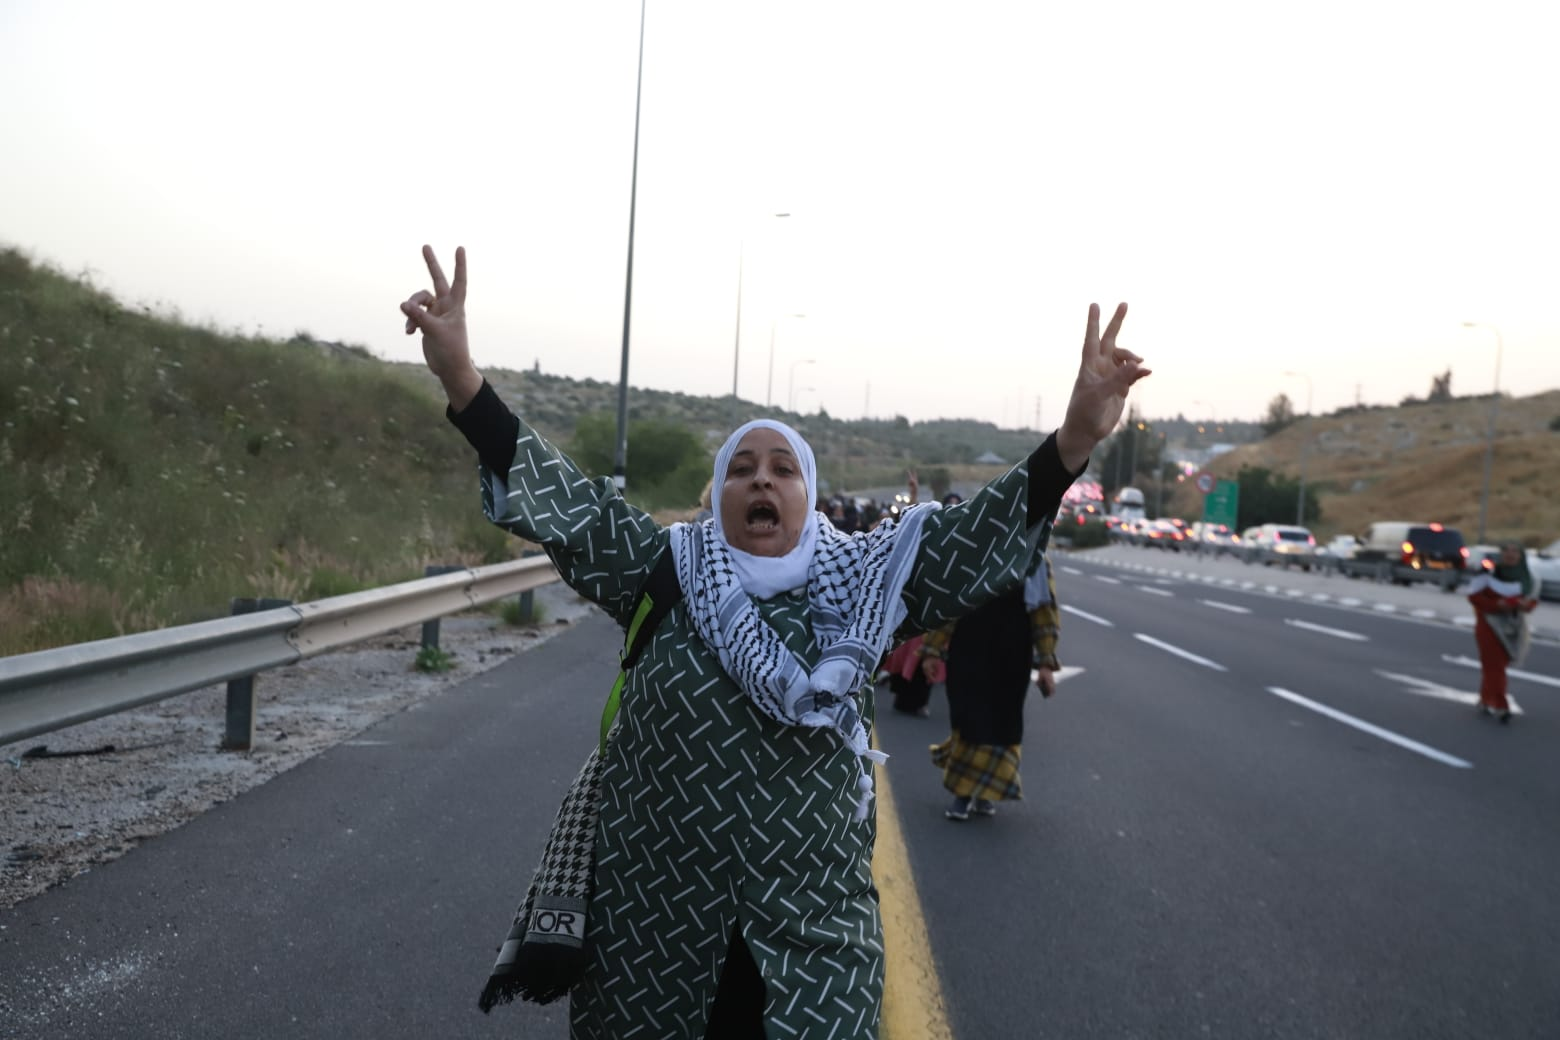 A Palestinian woman marches on Road 443 in the West Bank toward Jerusalem for Ramadan prayers after Israeli police blocked traffic into the city to prevent additional Palestinians from entering, May 8, 2021. (Oren Ziv)